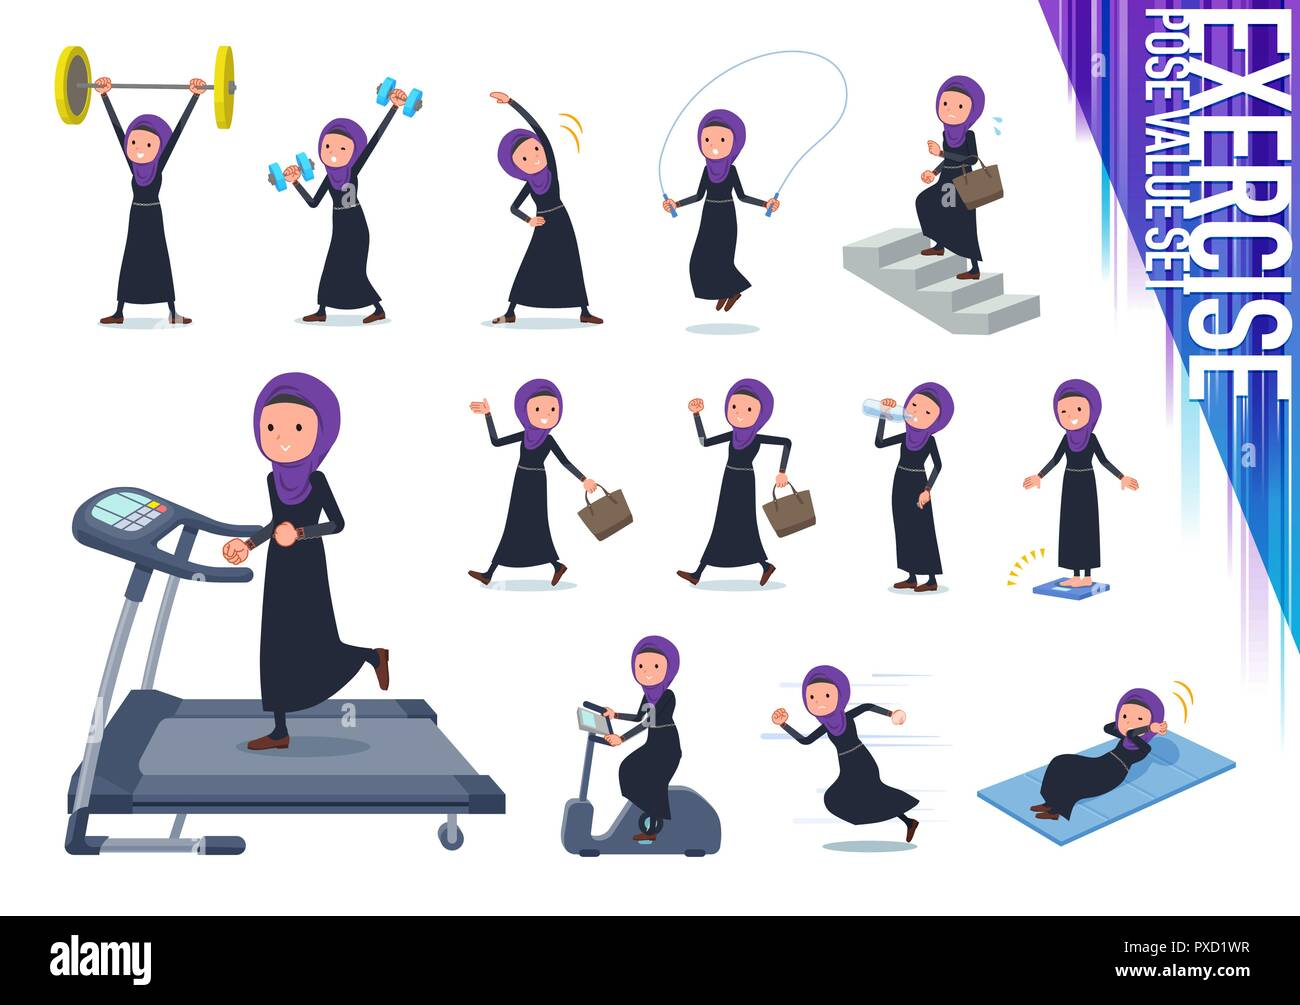 A set of women wearing hijab on exercise and sports.There are various actions to move the body healthy.It's vector art so it's easy to edit. - Stock Vector